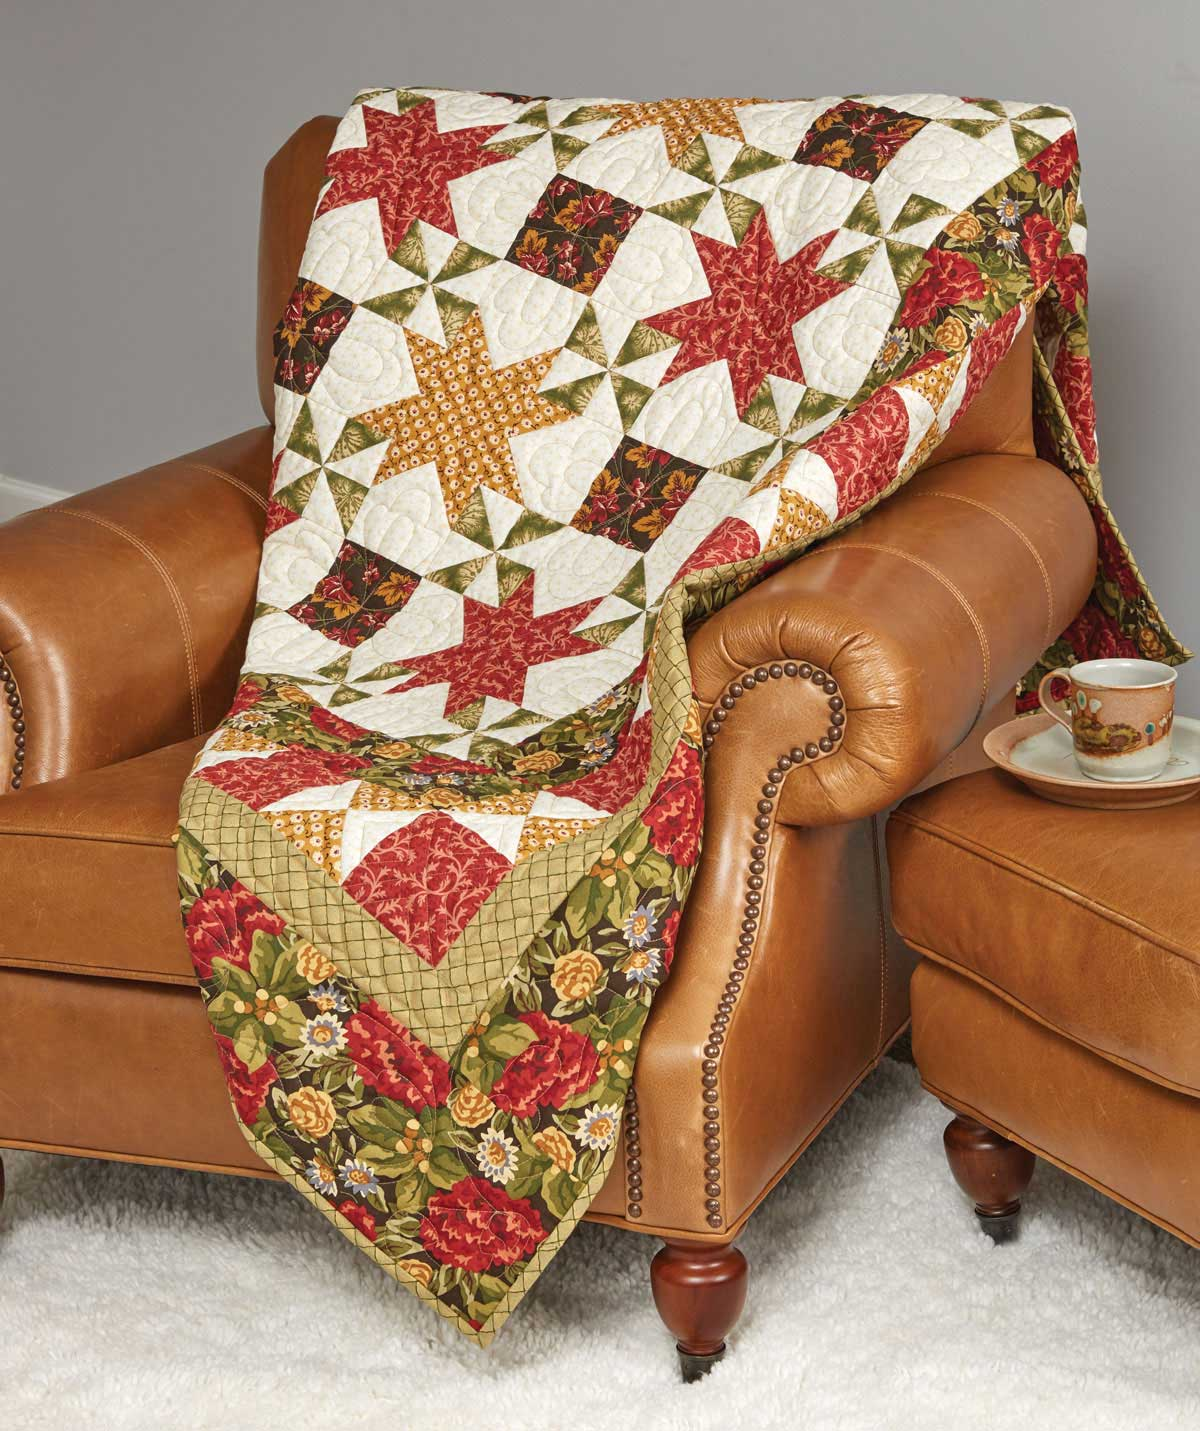 Autumn Star Shine Quilt Fons Amp Porter The Quilting Company